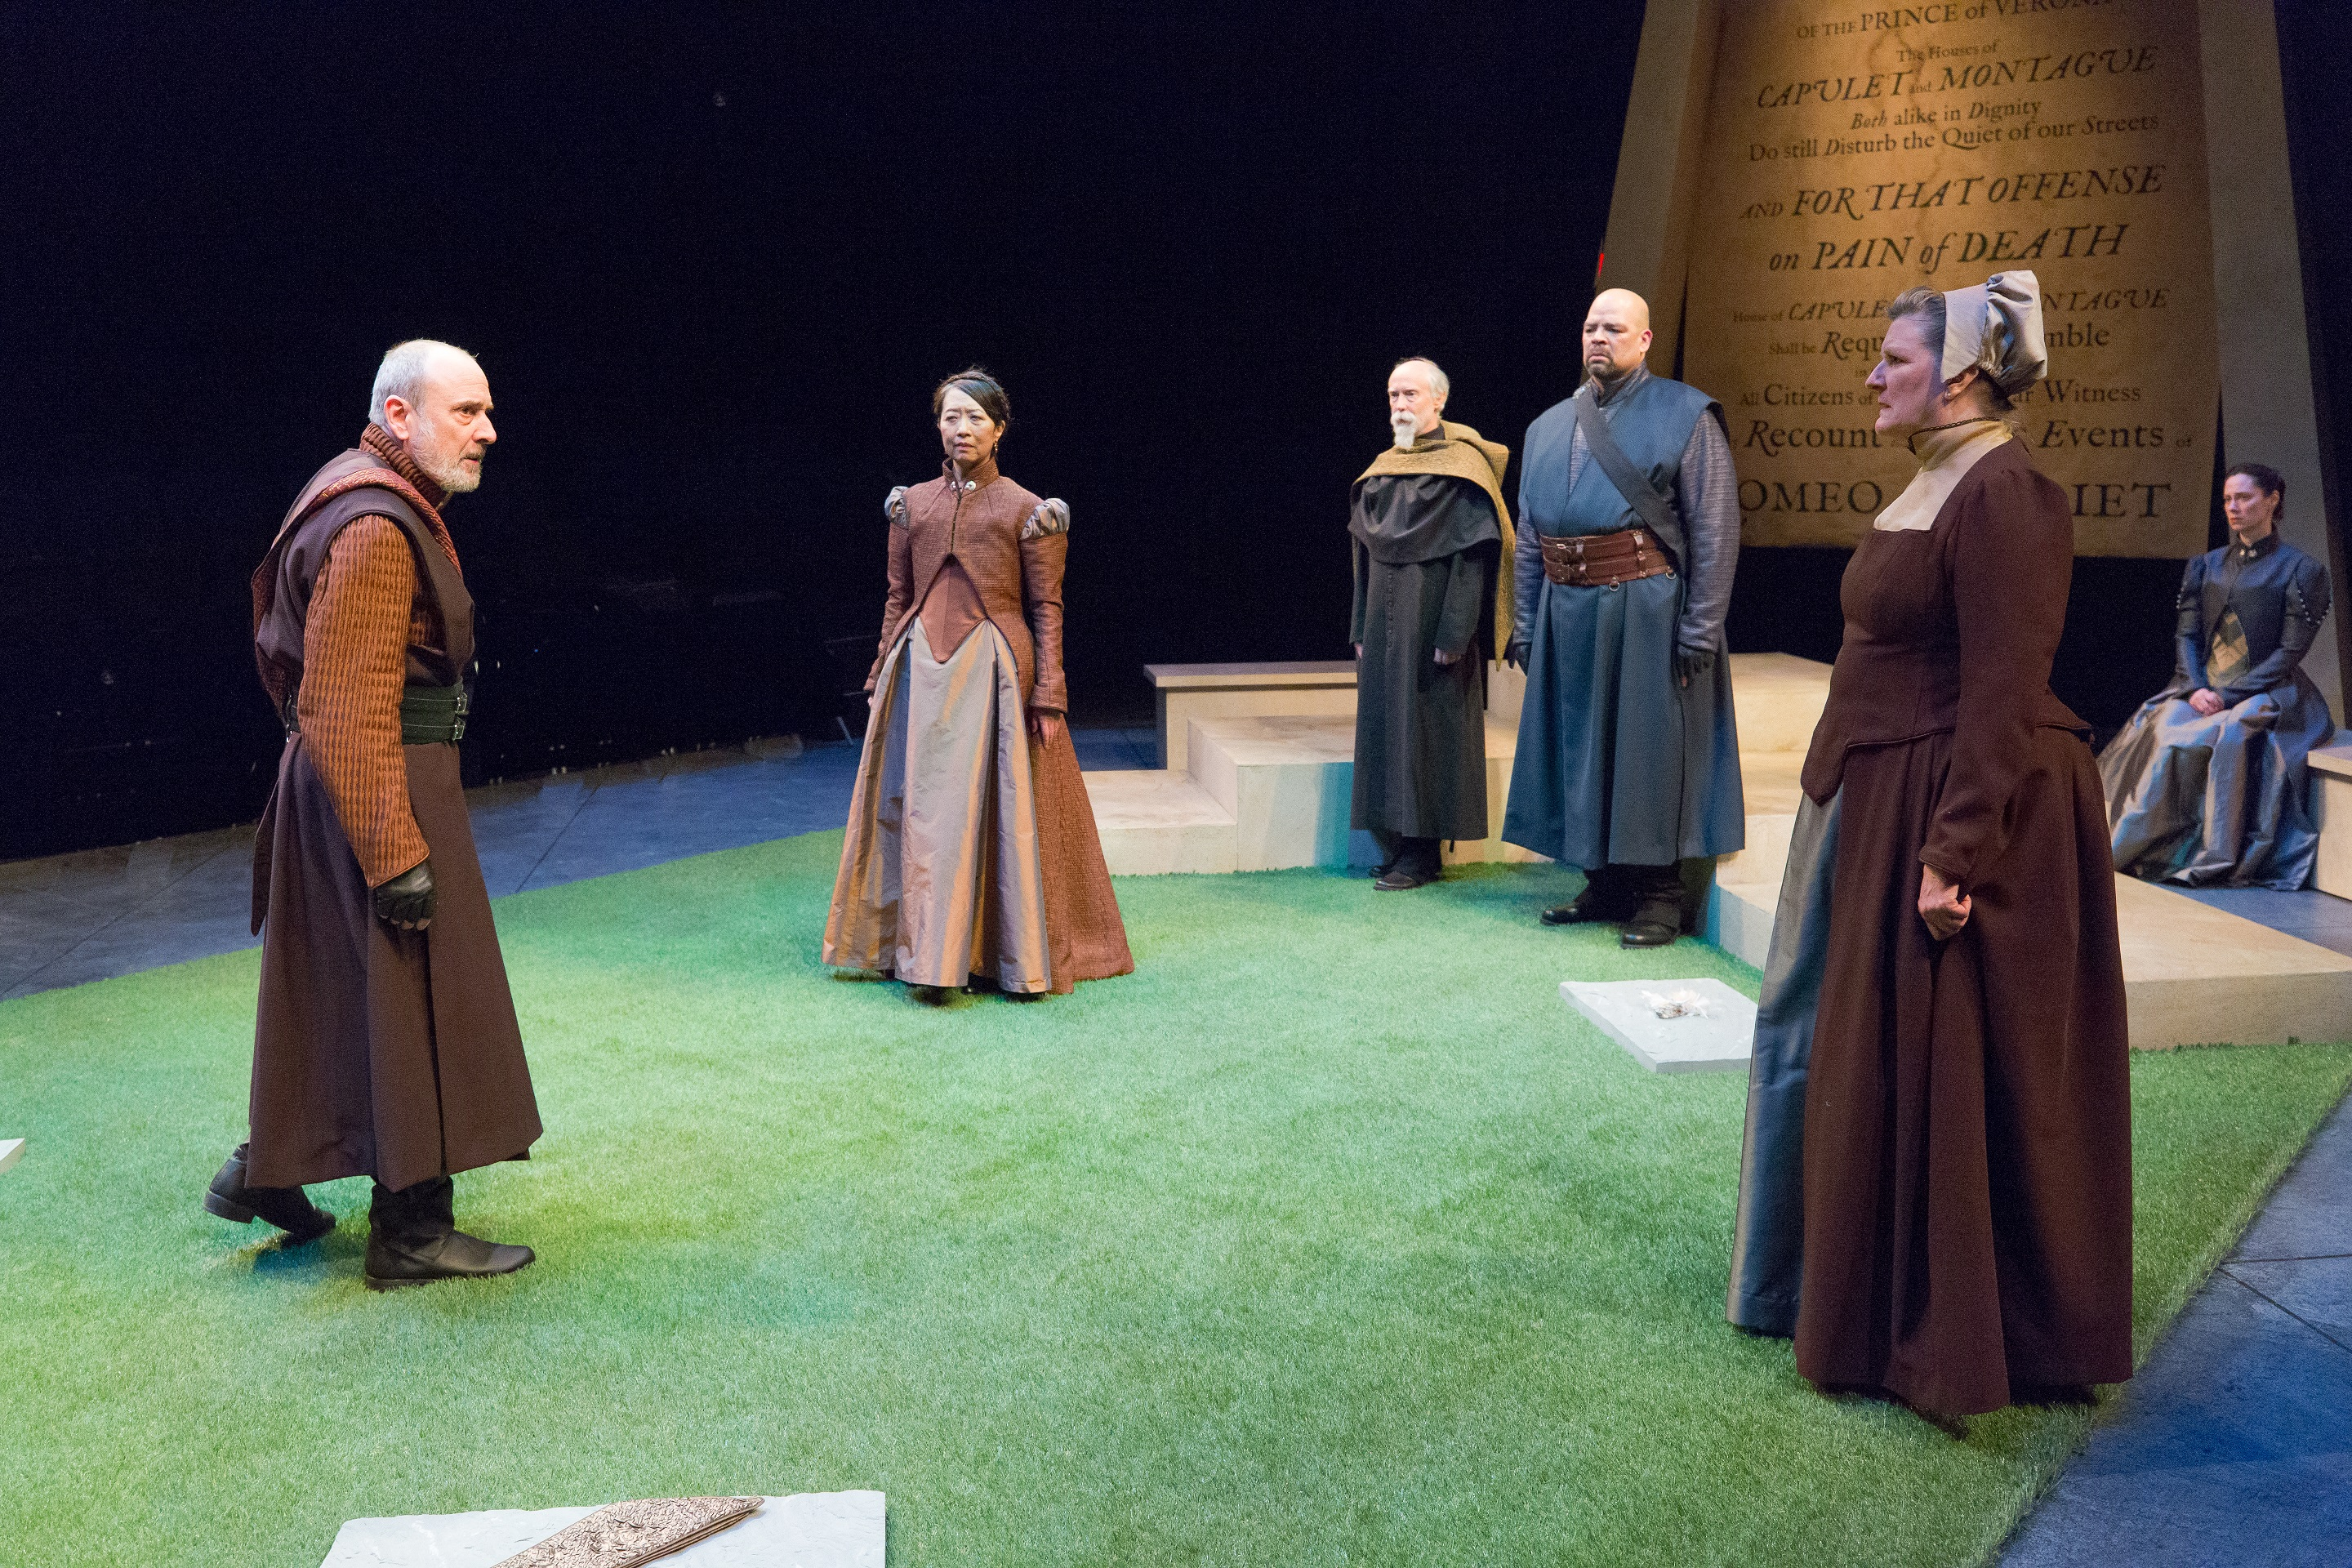 Actors on a green carpeted stage.